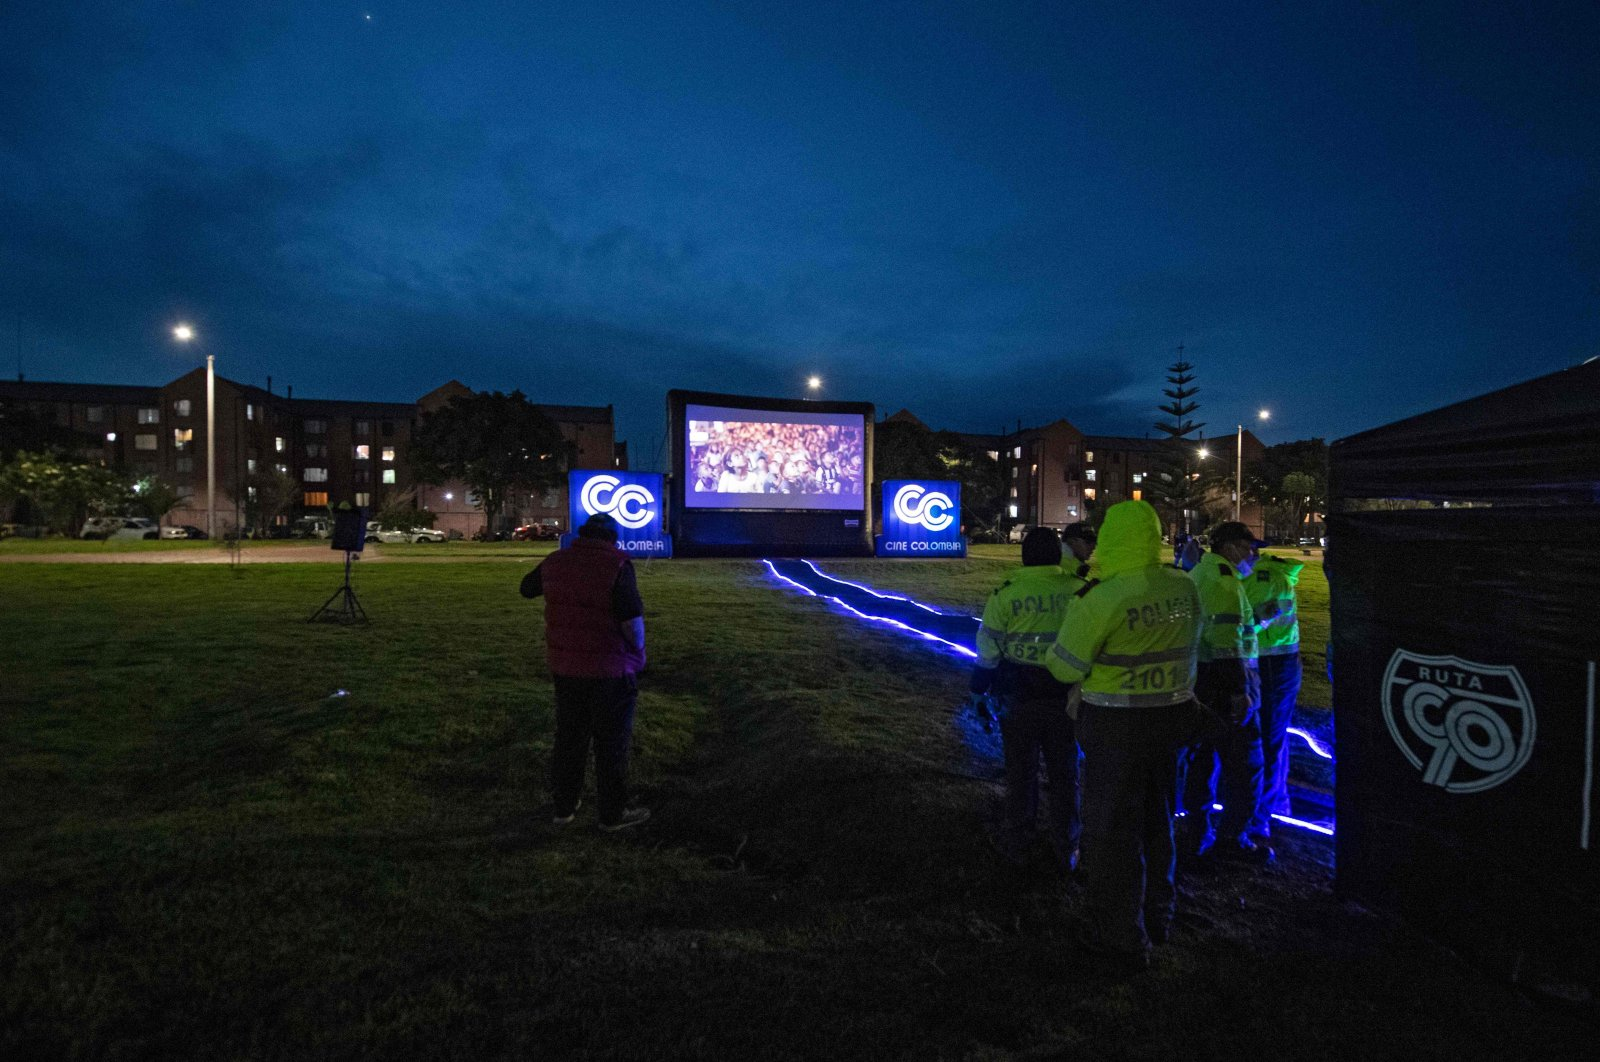 Police officers look at a film projected on a giant screen at a park so that residents under lockdown can watch from their apartments, amid the coronavirus pandemic, in Bogota, Colombia, April 23, 2020. (AFP Photo)